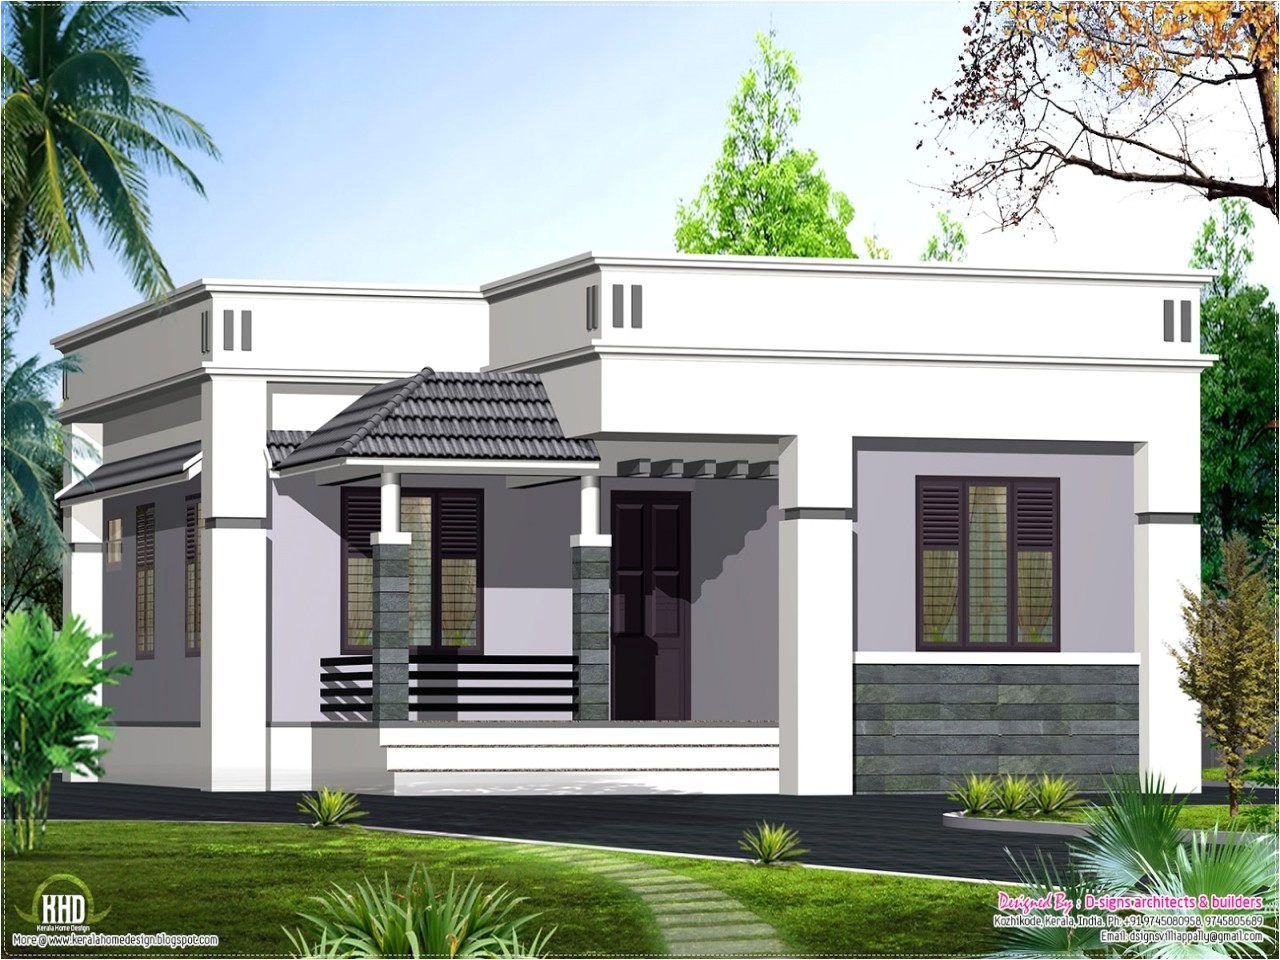 single floor house plans there are more single floor house elevation single floor house designs lrg 2a1d962c090b58e7